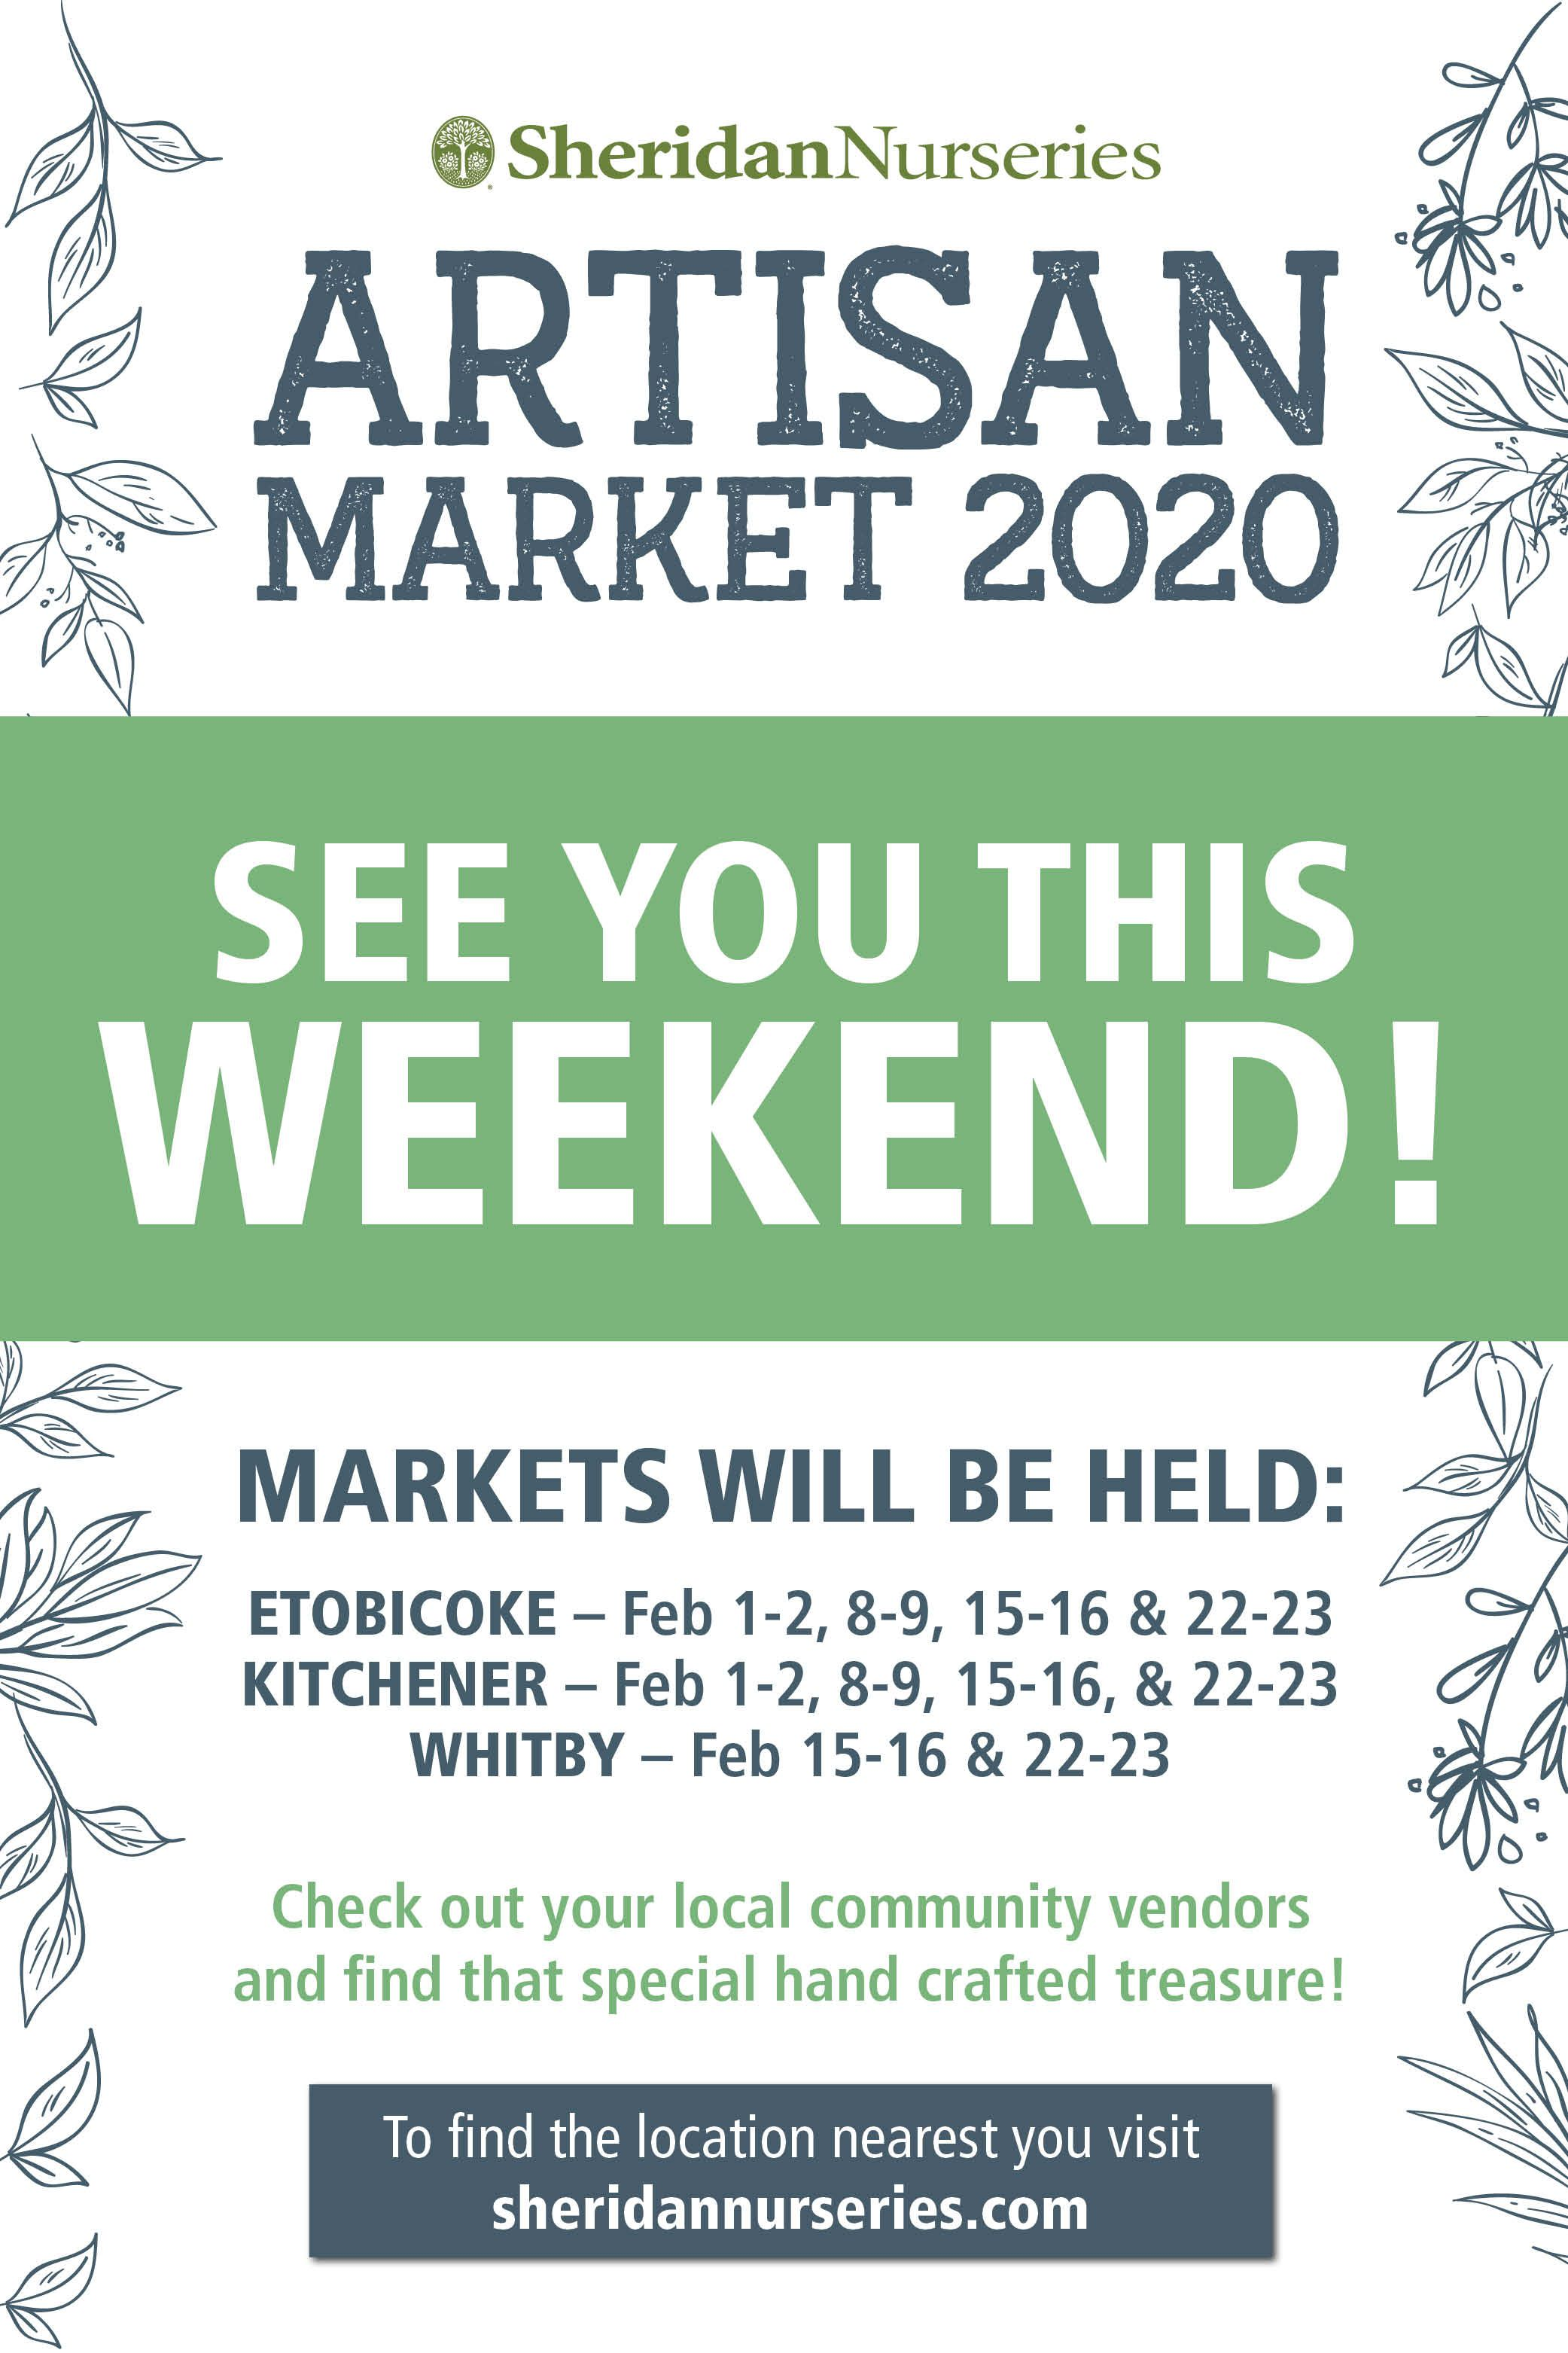 Find Your Local Garden Centre And Check Out Our New Event We Teamed Up With Various Local Vendors To Bring You So In 2020 Sheridan Nurseries Happy House Garden Center